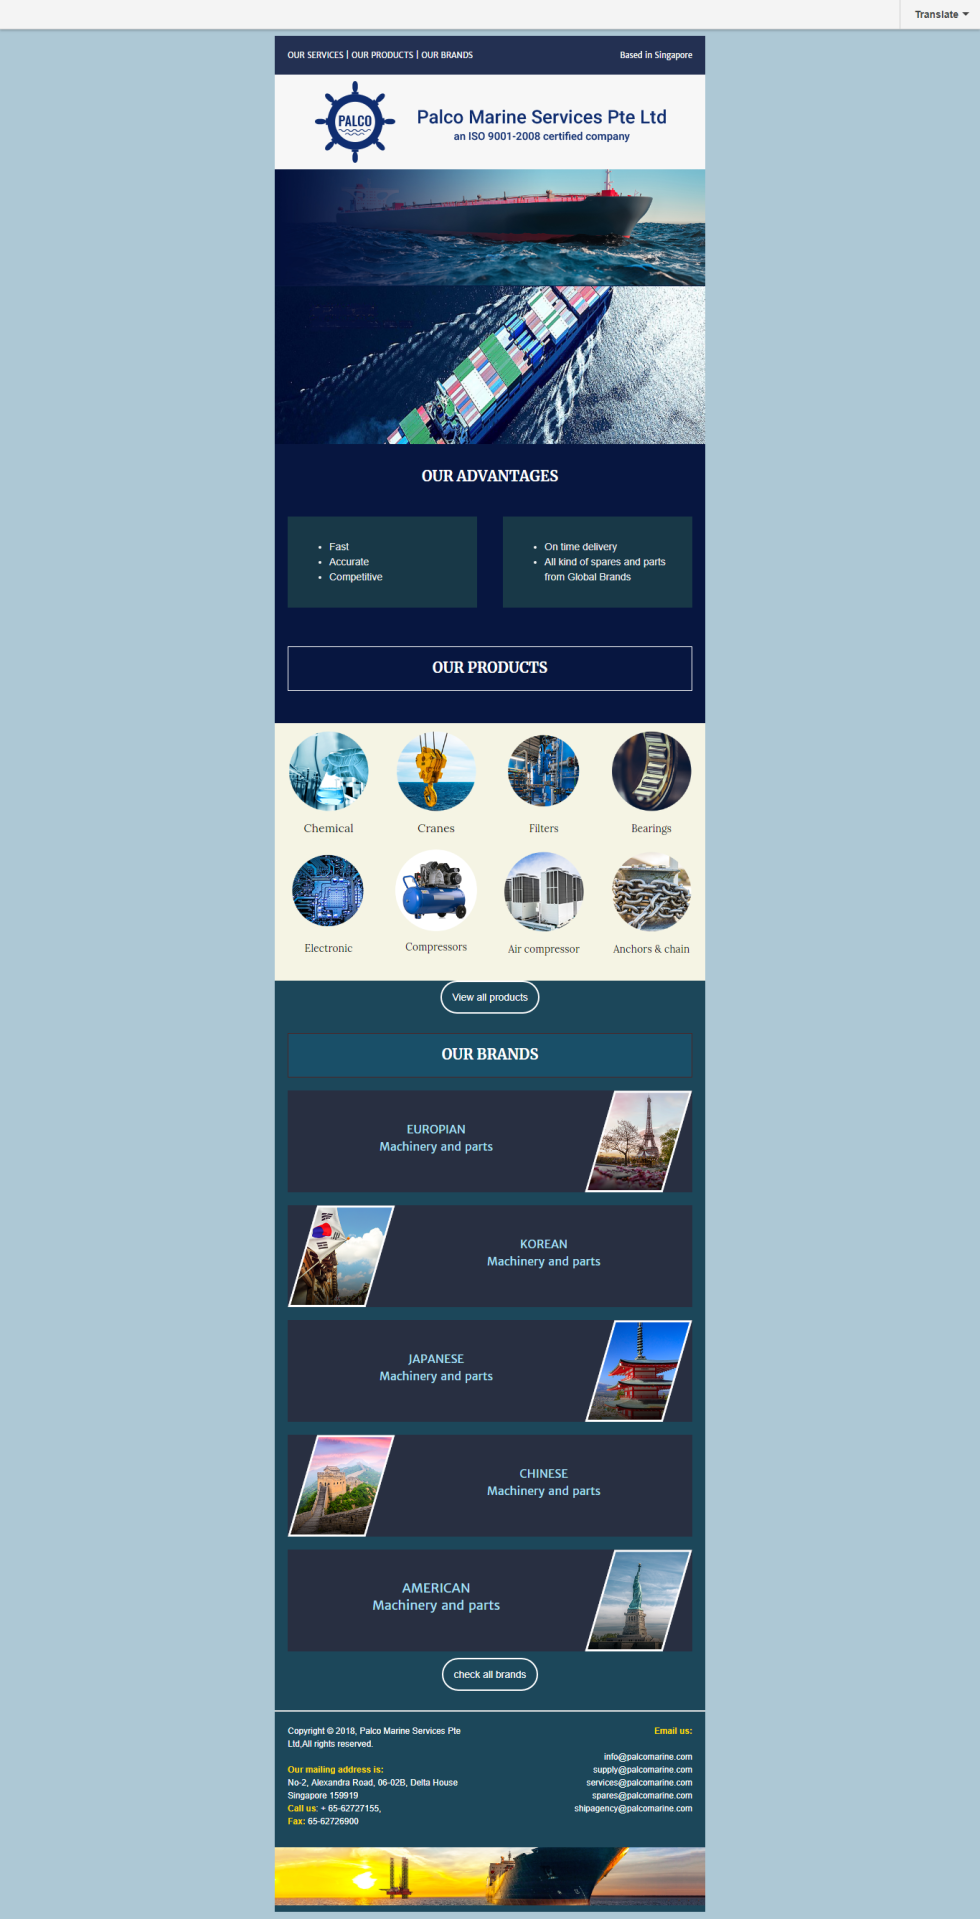 Email newsletter template featuring image header of company logo, image of cargo ship, images of shipping products. Colors are various shades of blue.